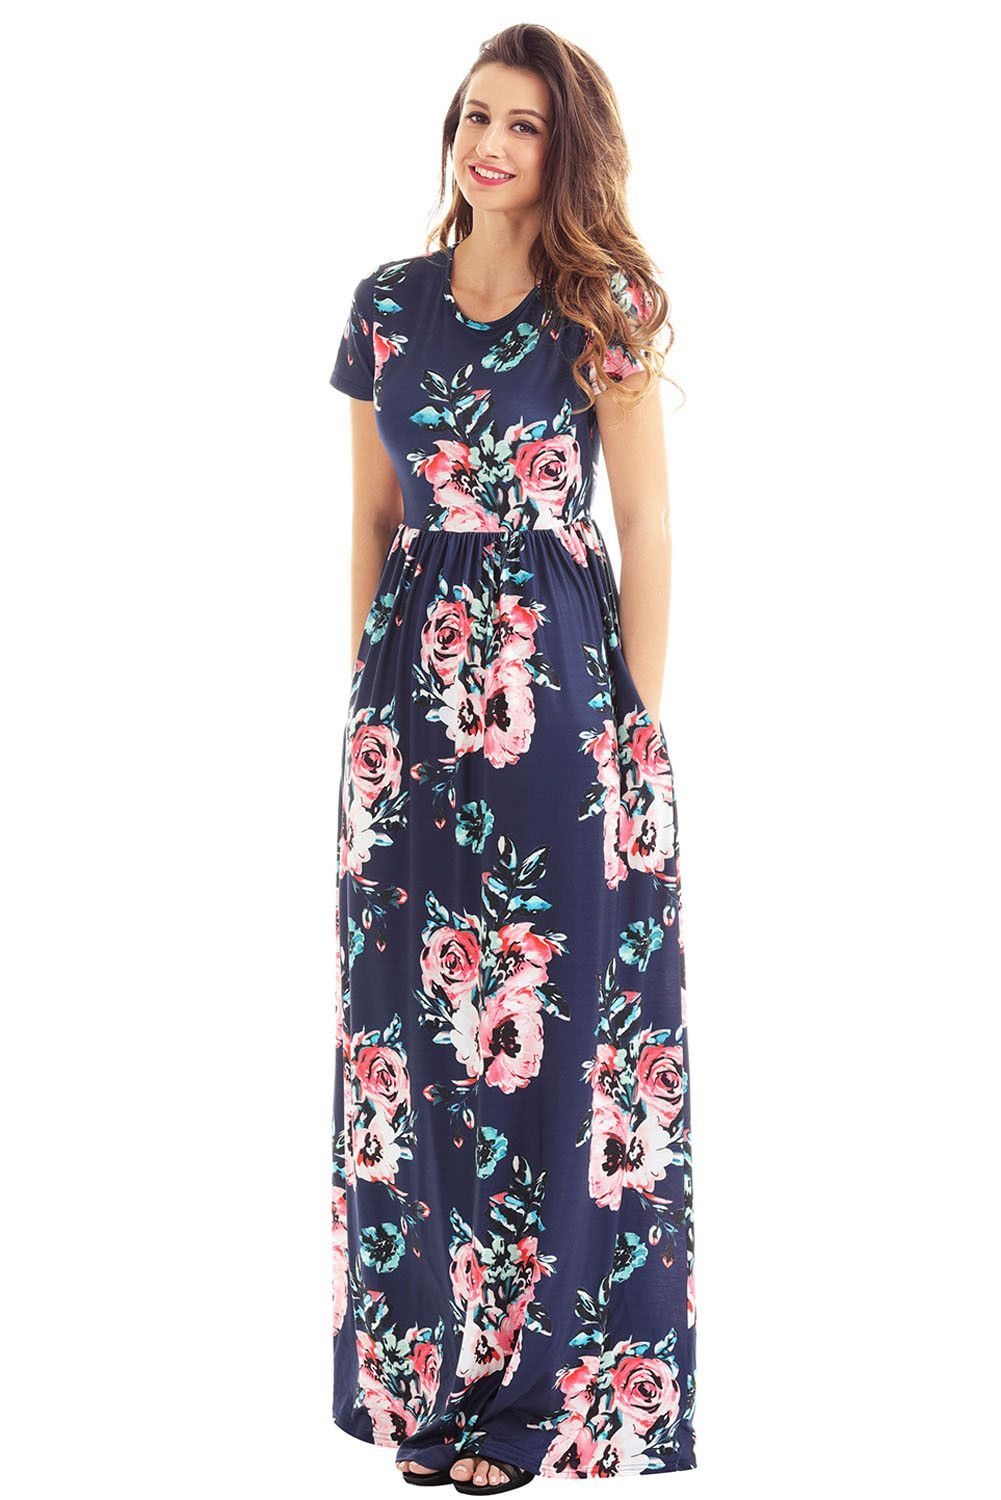 1cedacfa2e0b HOTAPEI Women s Floral Print Long Dress Short Sleeve Empire Flower Maxi  Dresses Navy 1 Medium  When You Need That Perfect Boutique Maxi Dress This  Floral ...